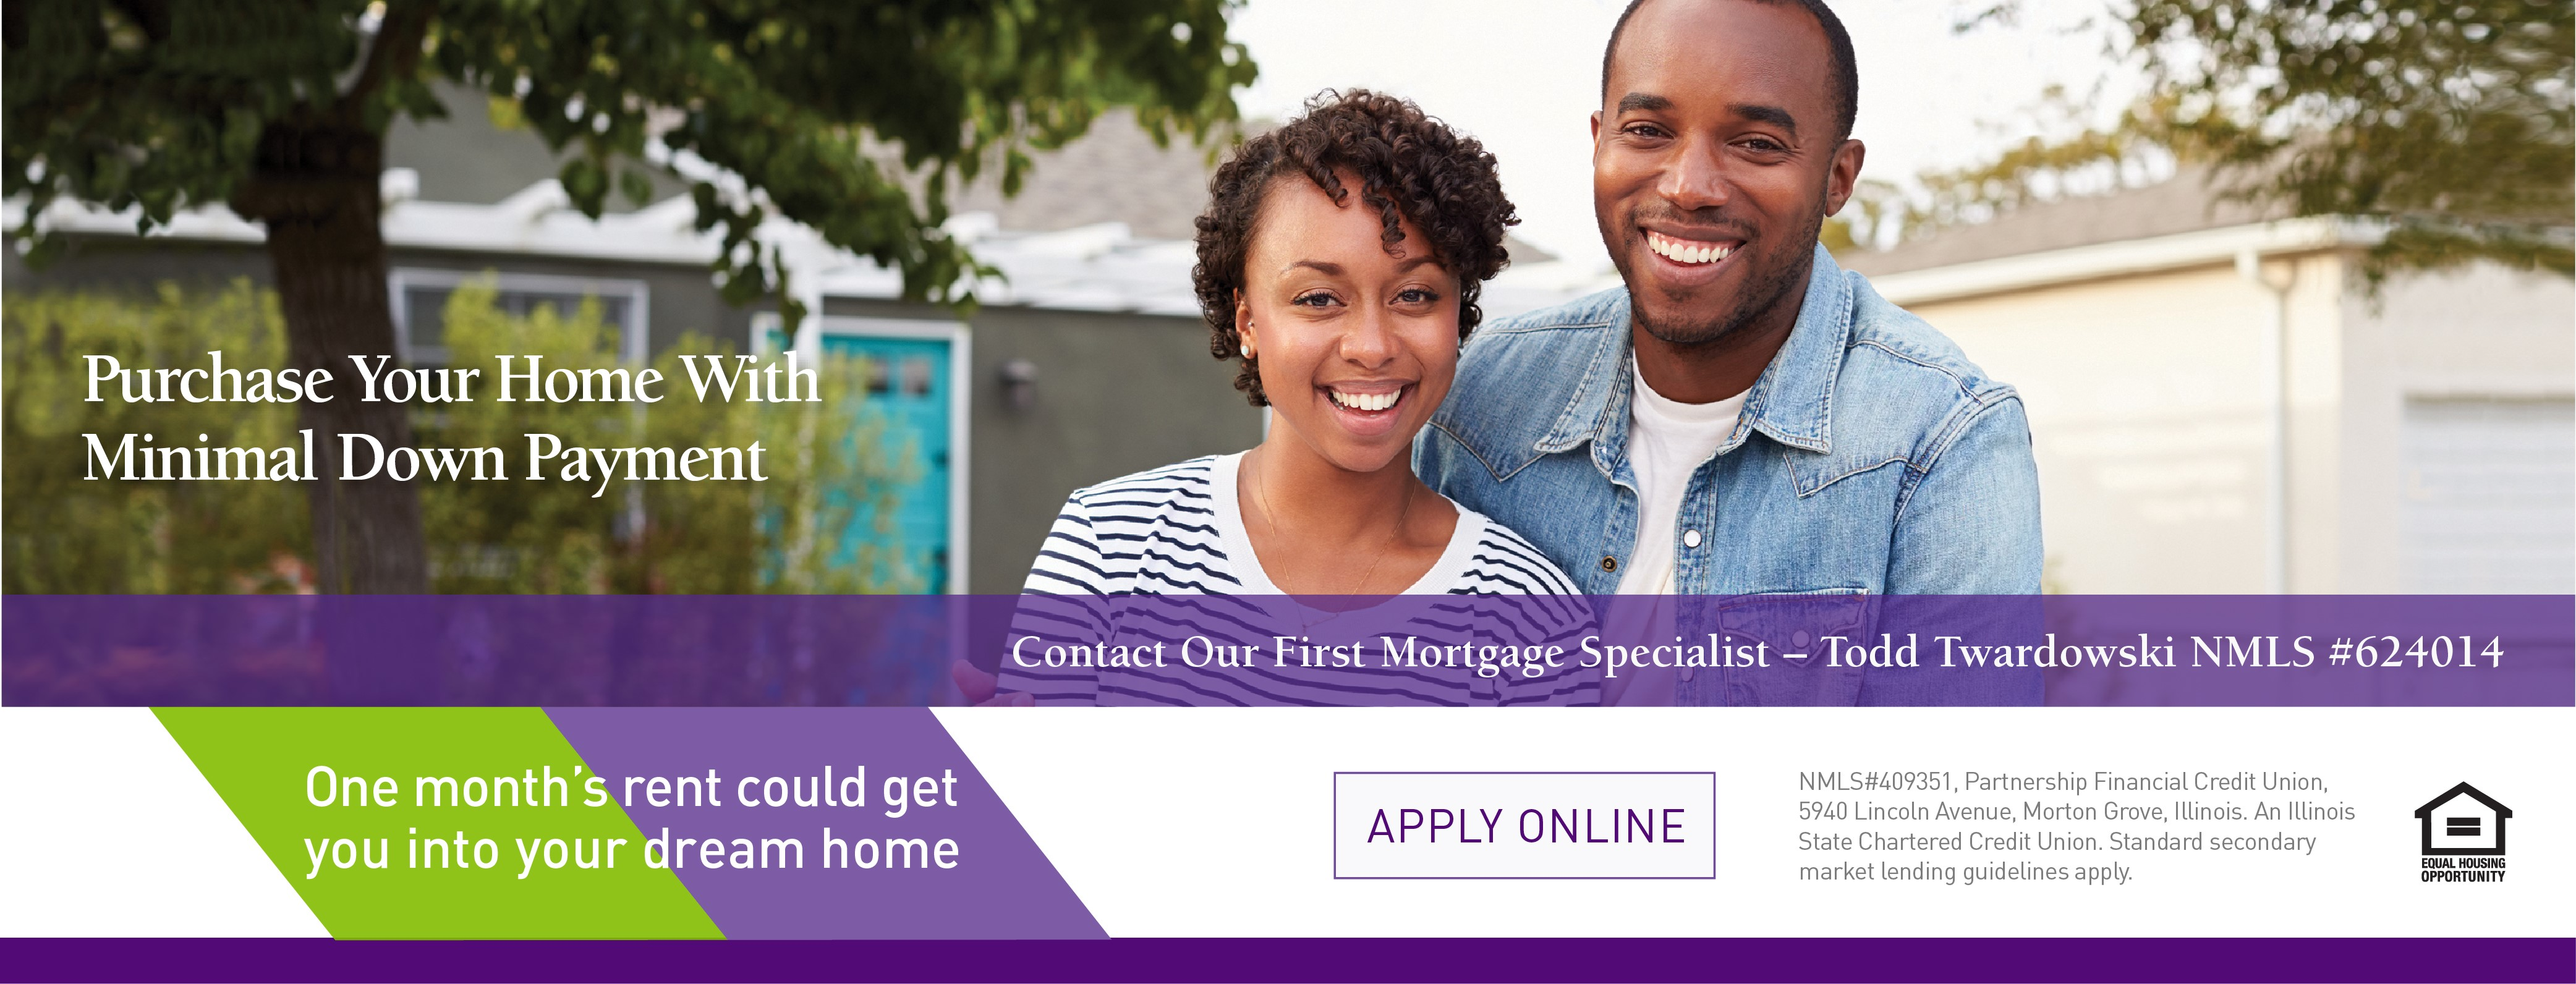 Purchase Your Home With Minimal Down Payment